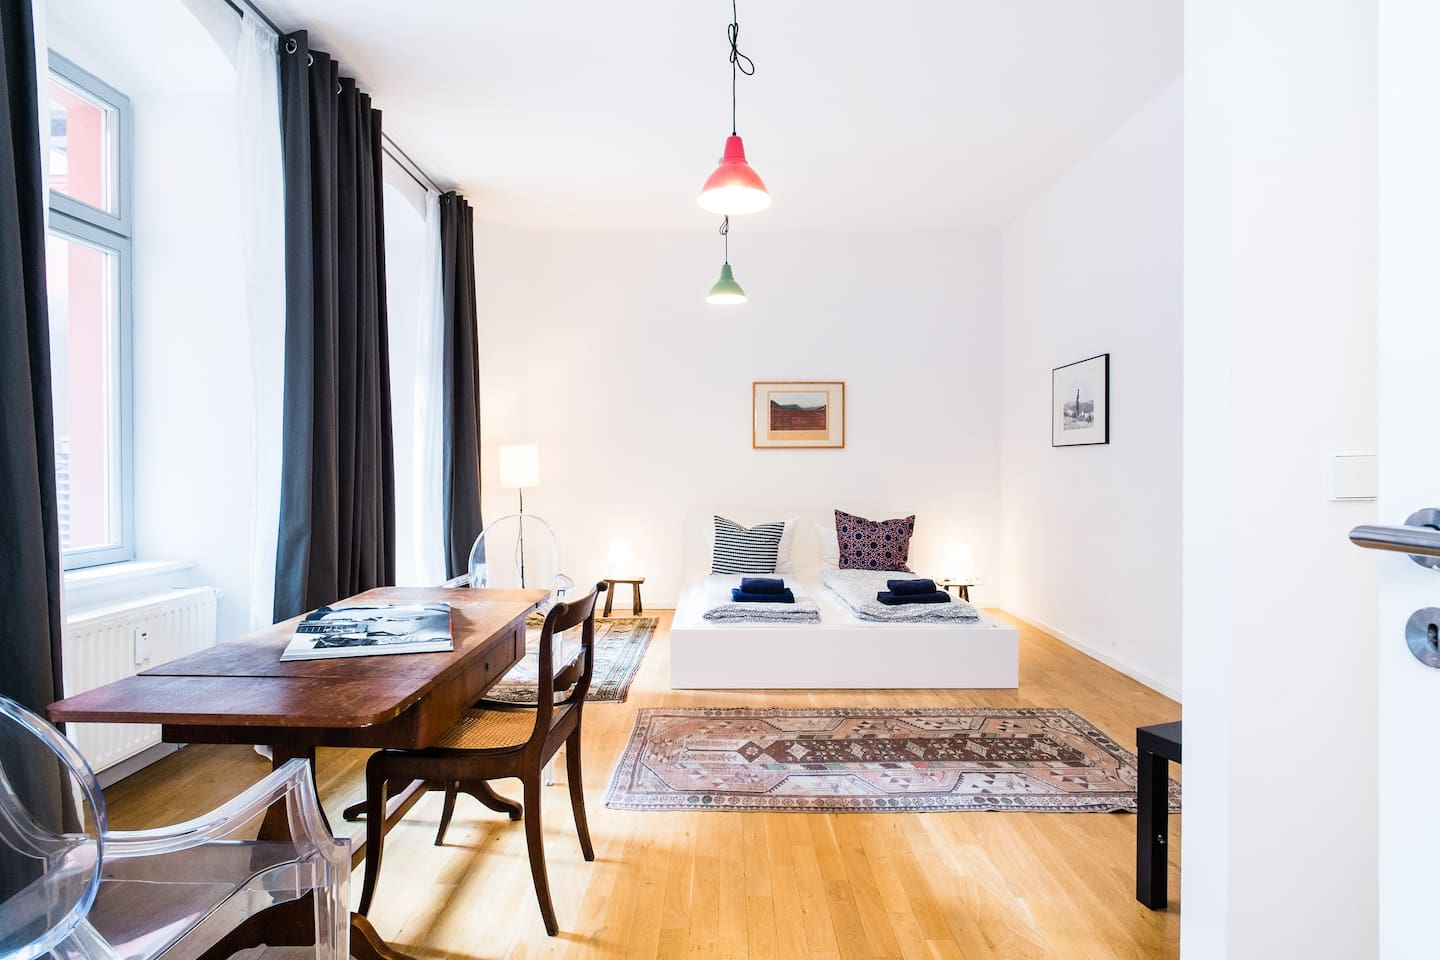 parquet flooring and big windows give a distinct feel to the flat